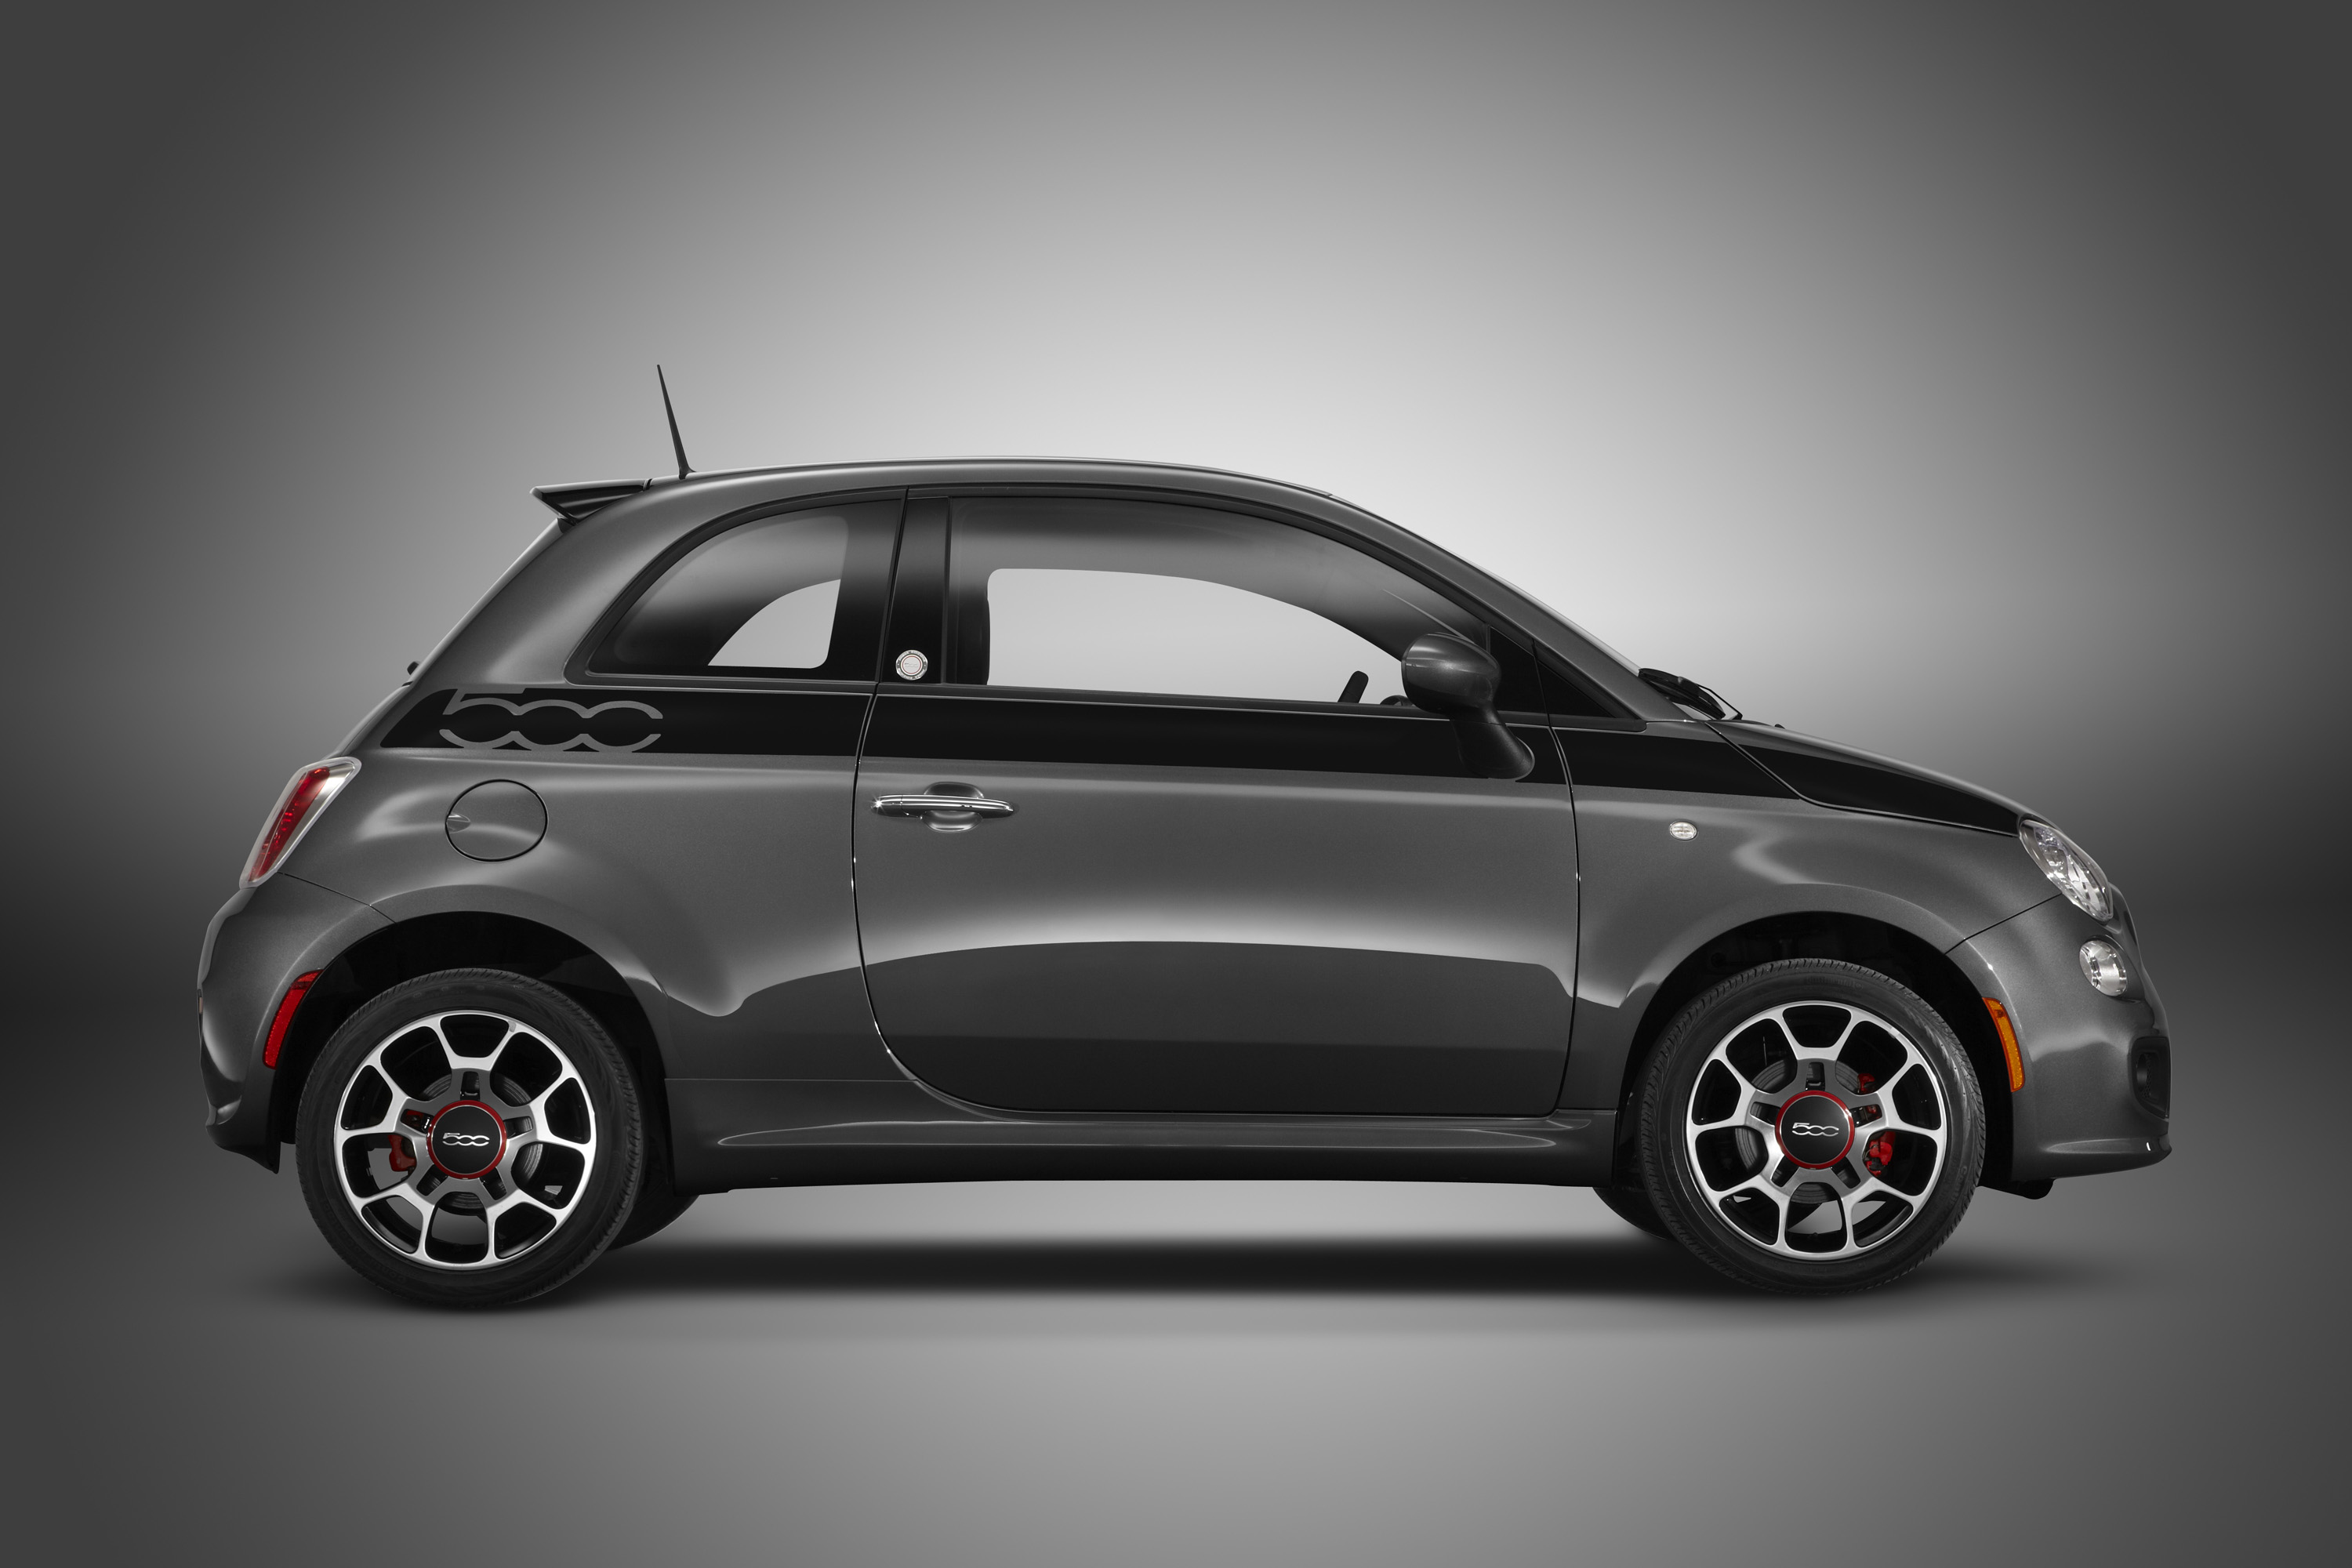 case img the of they jack review attempted abarth murder baruth vs me courtesy all that gave was photos mini fiat